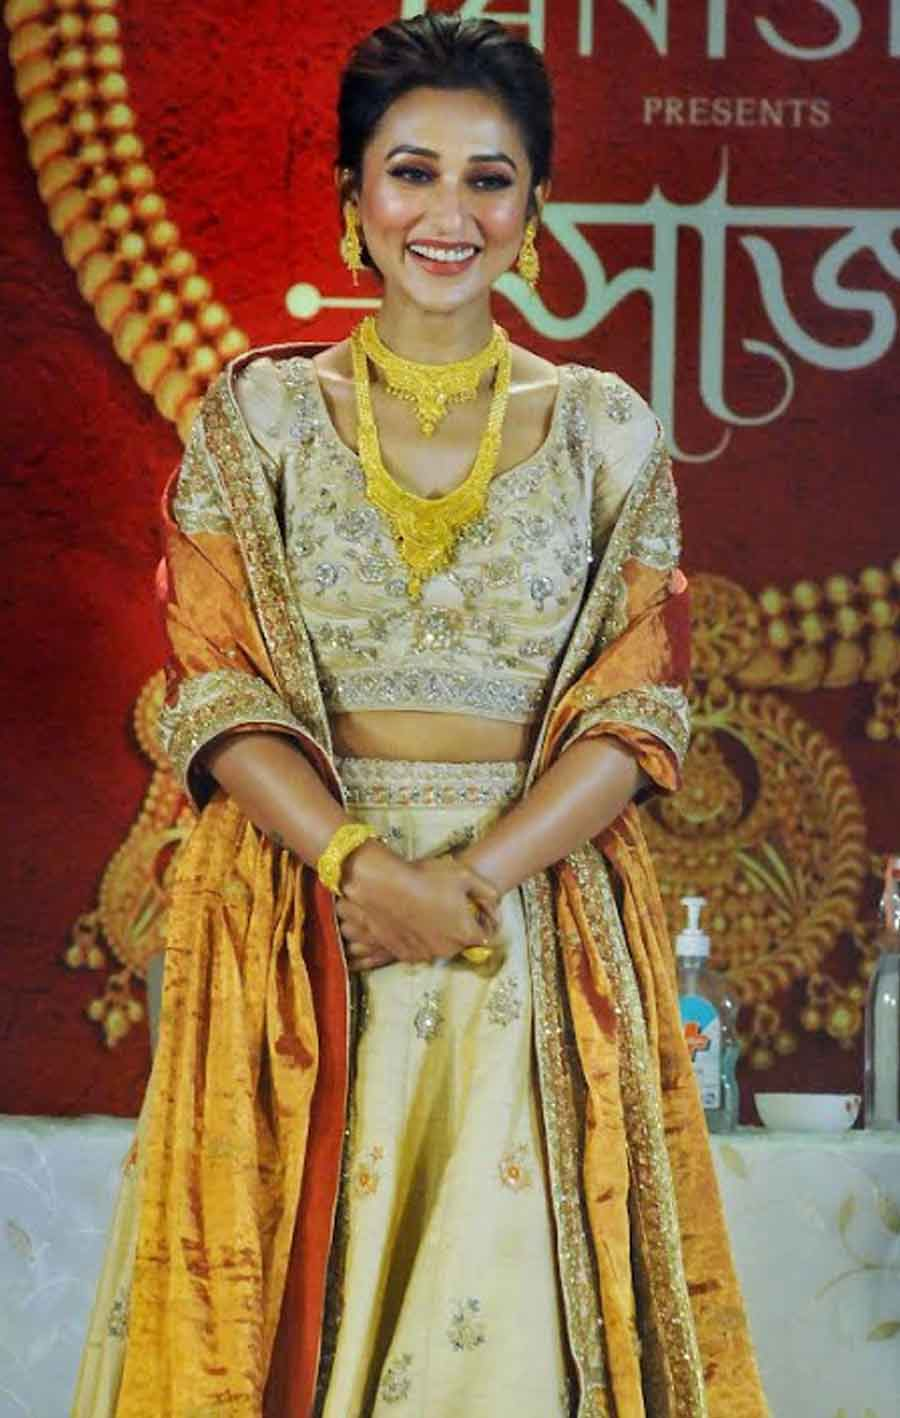 GLAM AVATAR: Actor turned MP Mimi Chakraborty at a jewellery launch event in Kolkata on Tuesday, September 21